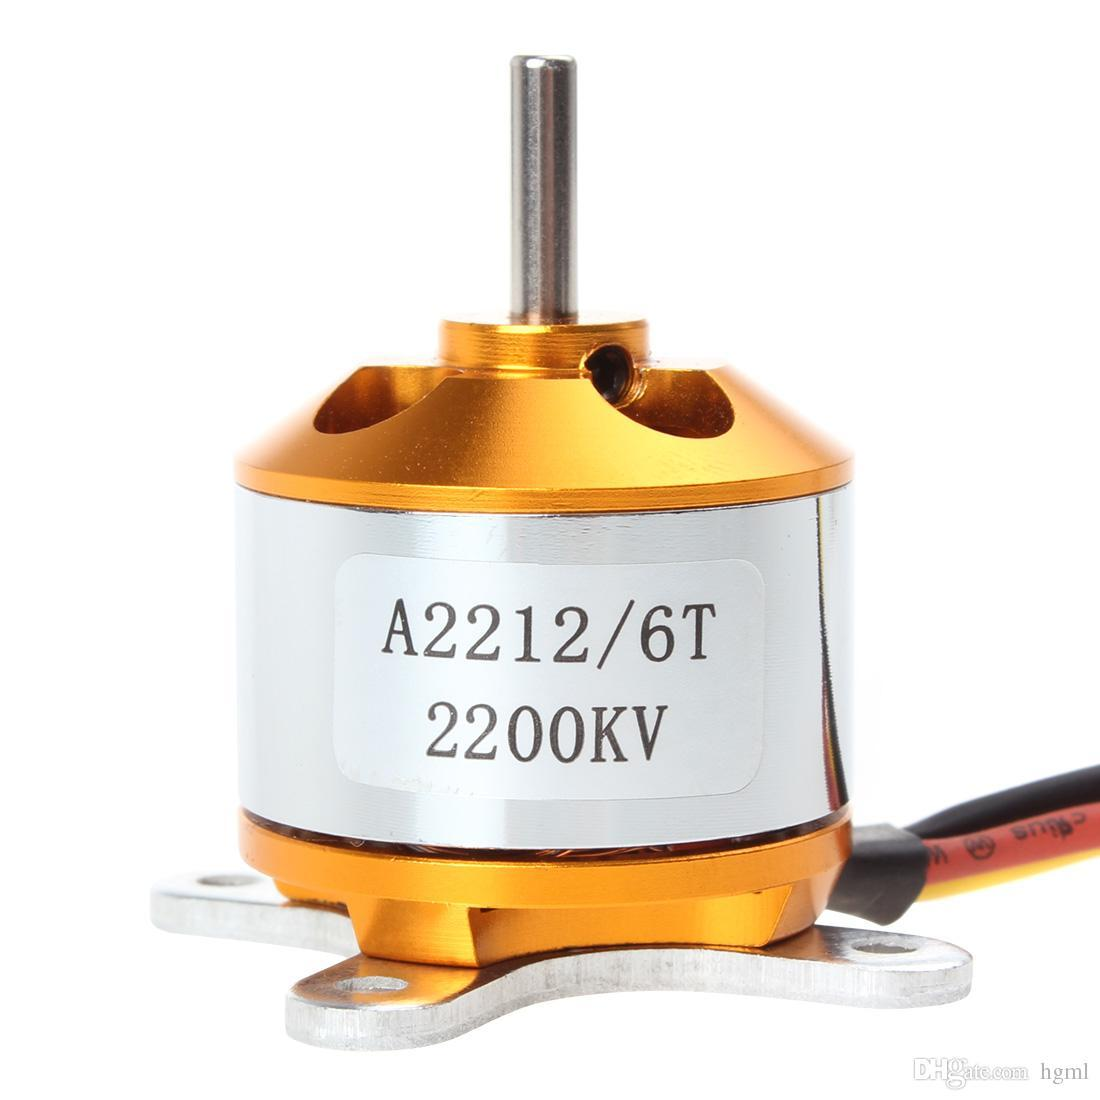 Brushless Outrunner Motor 2200KV for RC Quadcopter / Airplane / Aircraft